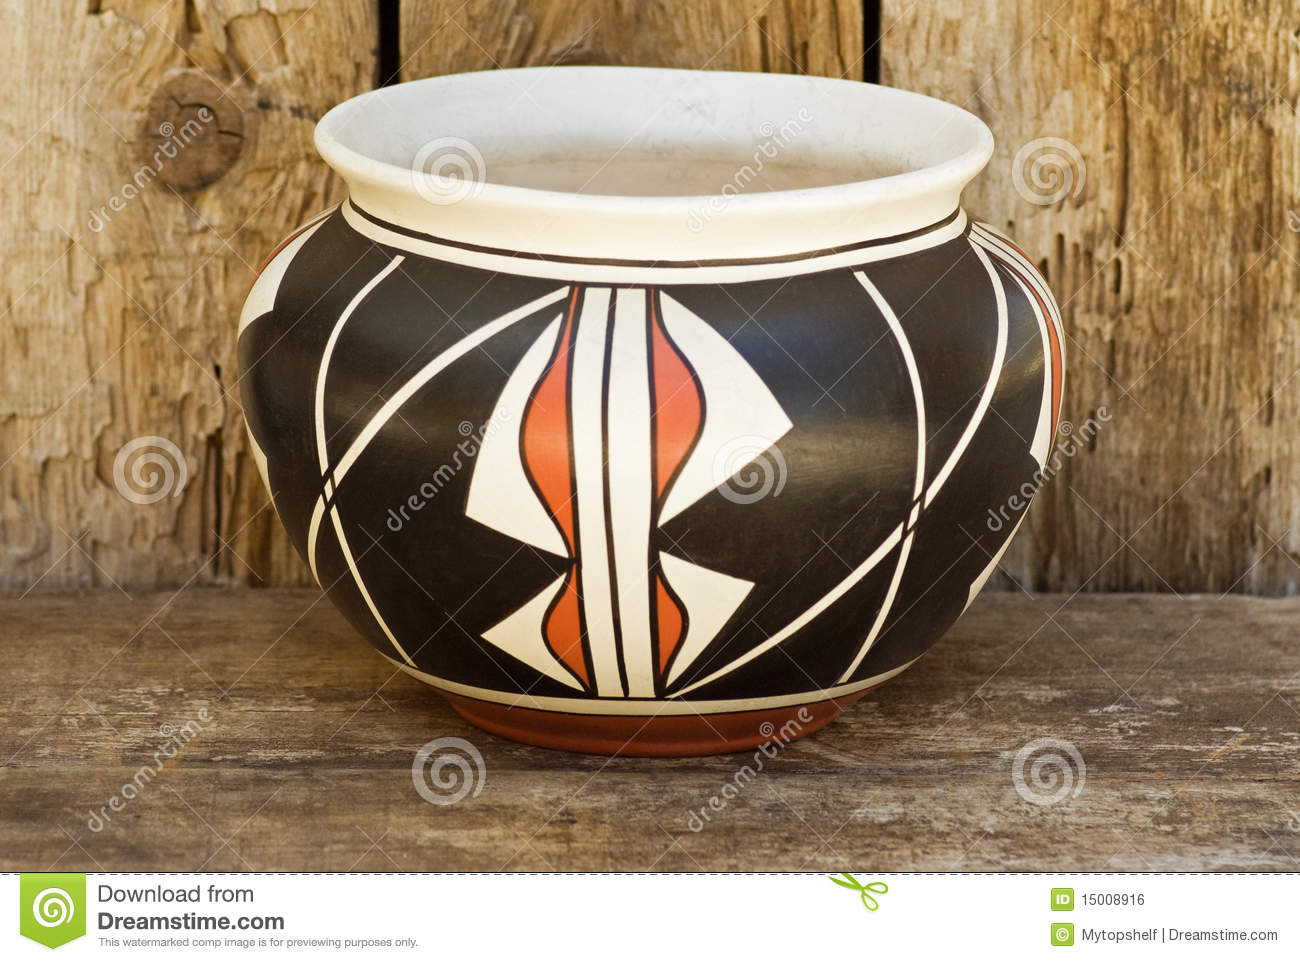 Native American Indian Pottery On Wood Shelf Stock Photo Image Of Native Ceramic 15008916,Industrial Small Modern Office Design